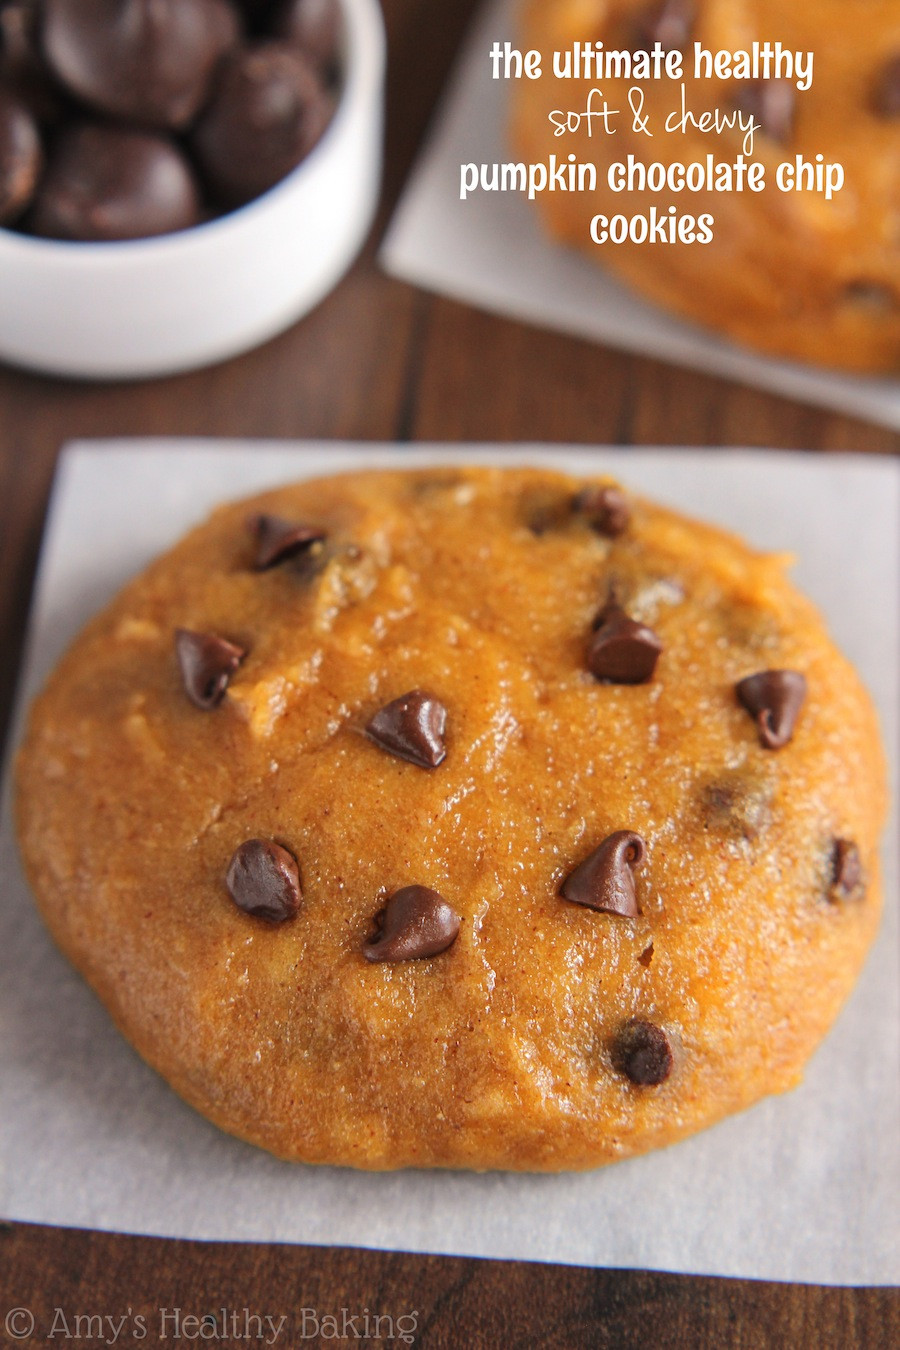 Healthy Chocolate Chip Cookies Recipe  The Ultimate Healthy Soft & Chewy Pumpkin Chocolate Chip